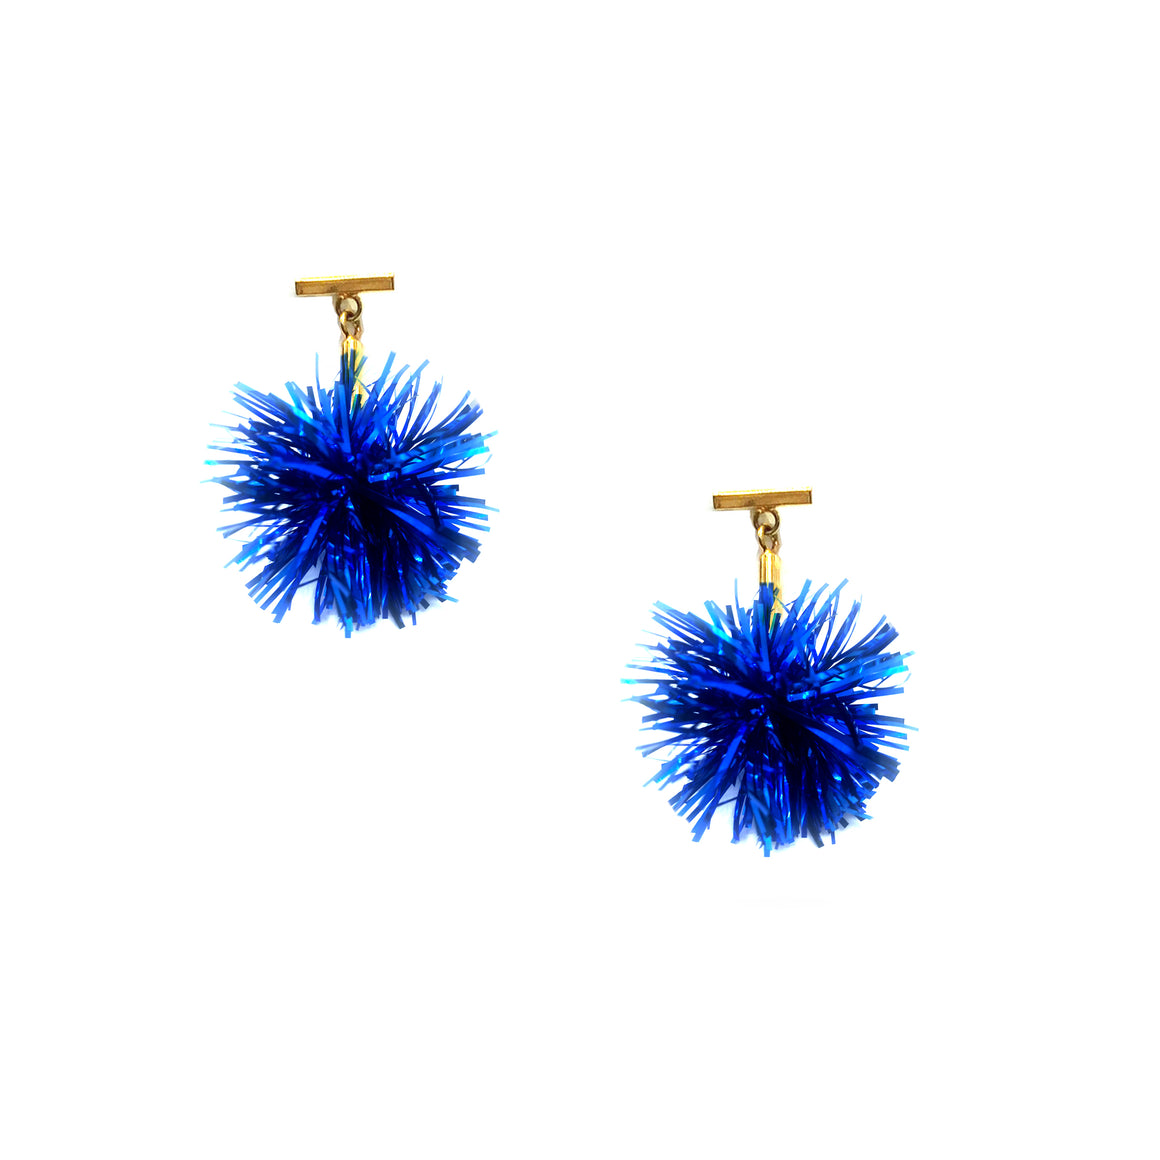 "1"" Cobalt Lurex Pom Pom T Stud Earrings, Earrings, Tuleste, Tuleste"